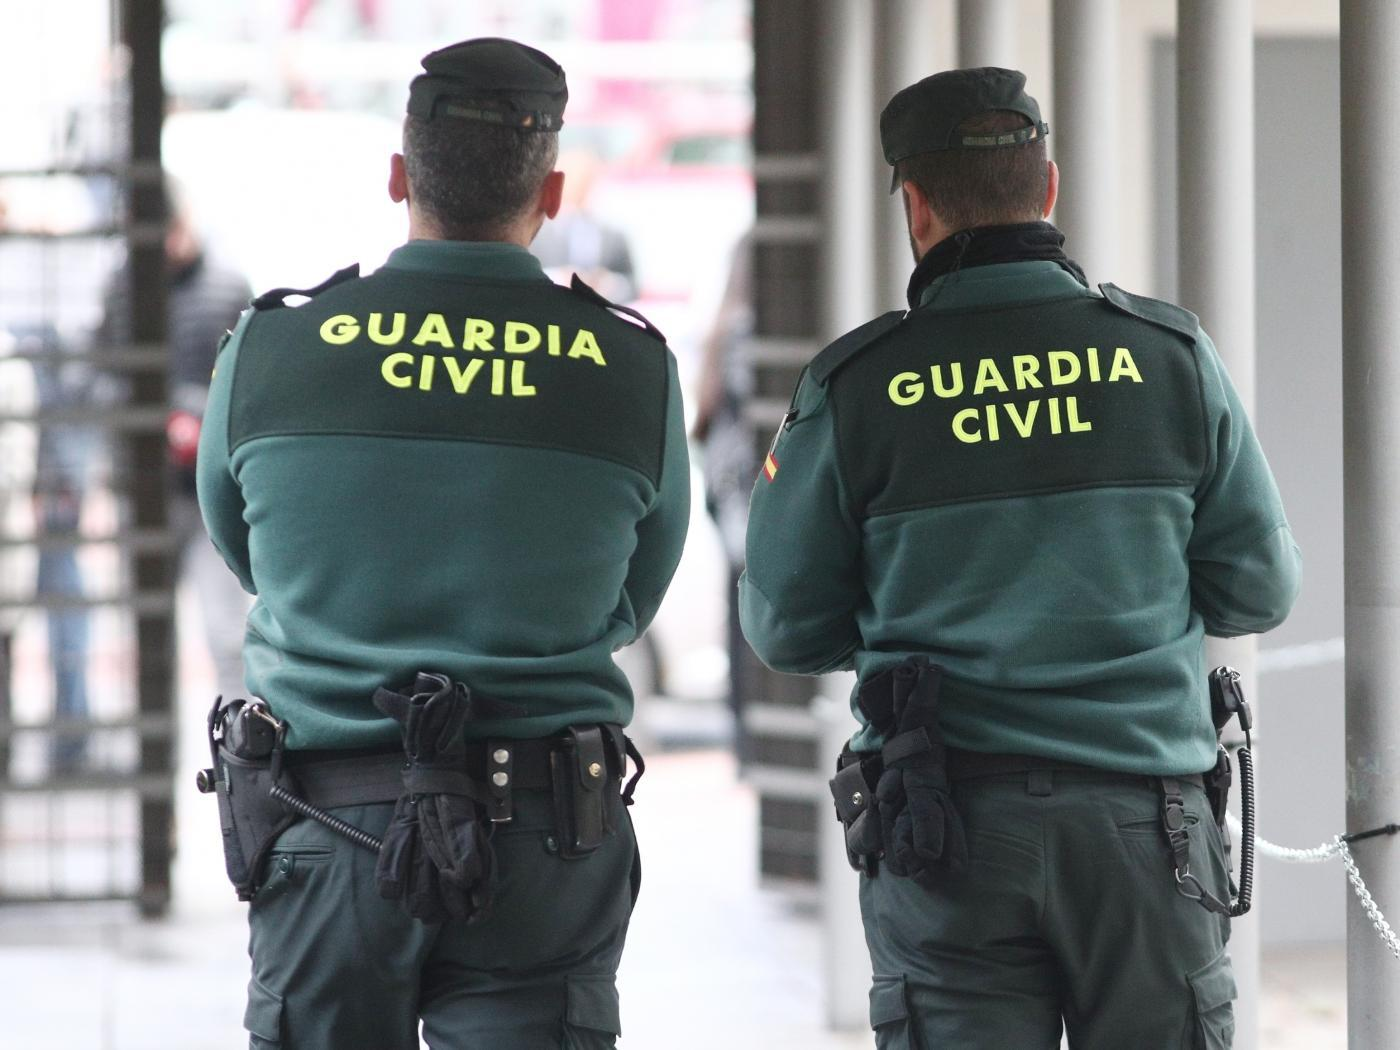 Agentes de la Guardia Civil. Europa Press